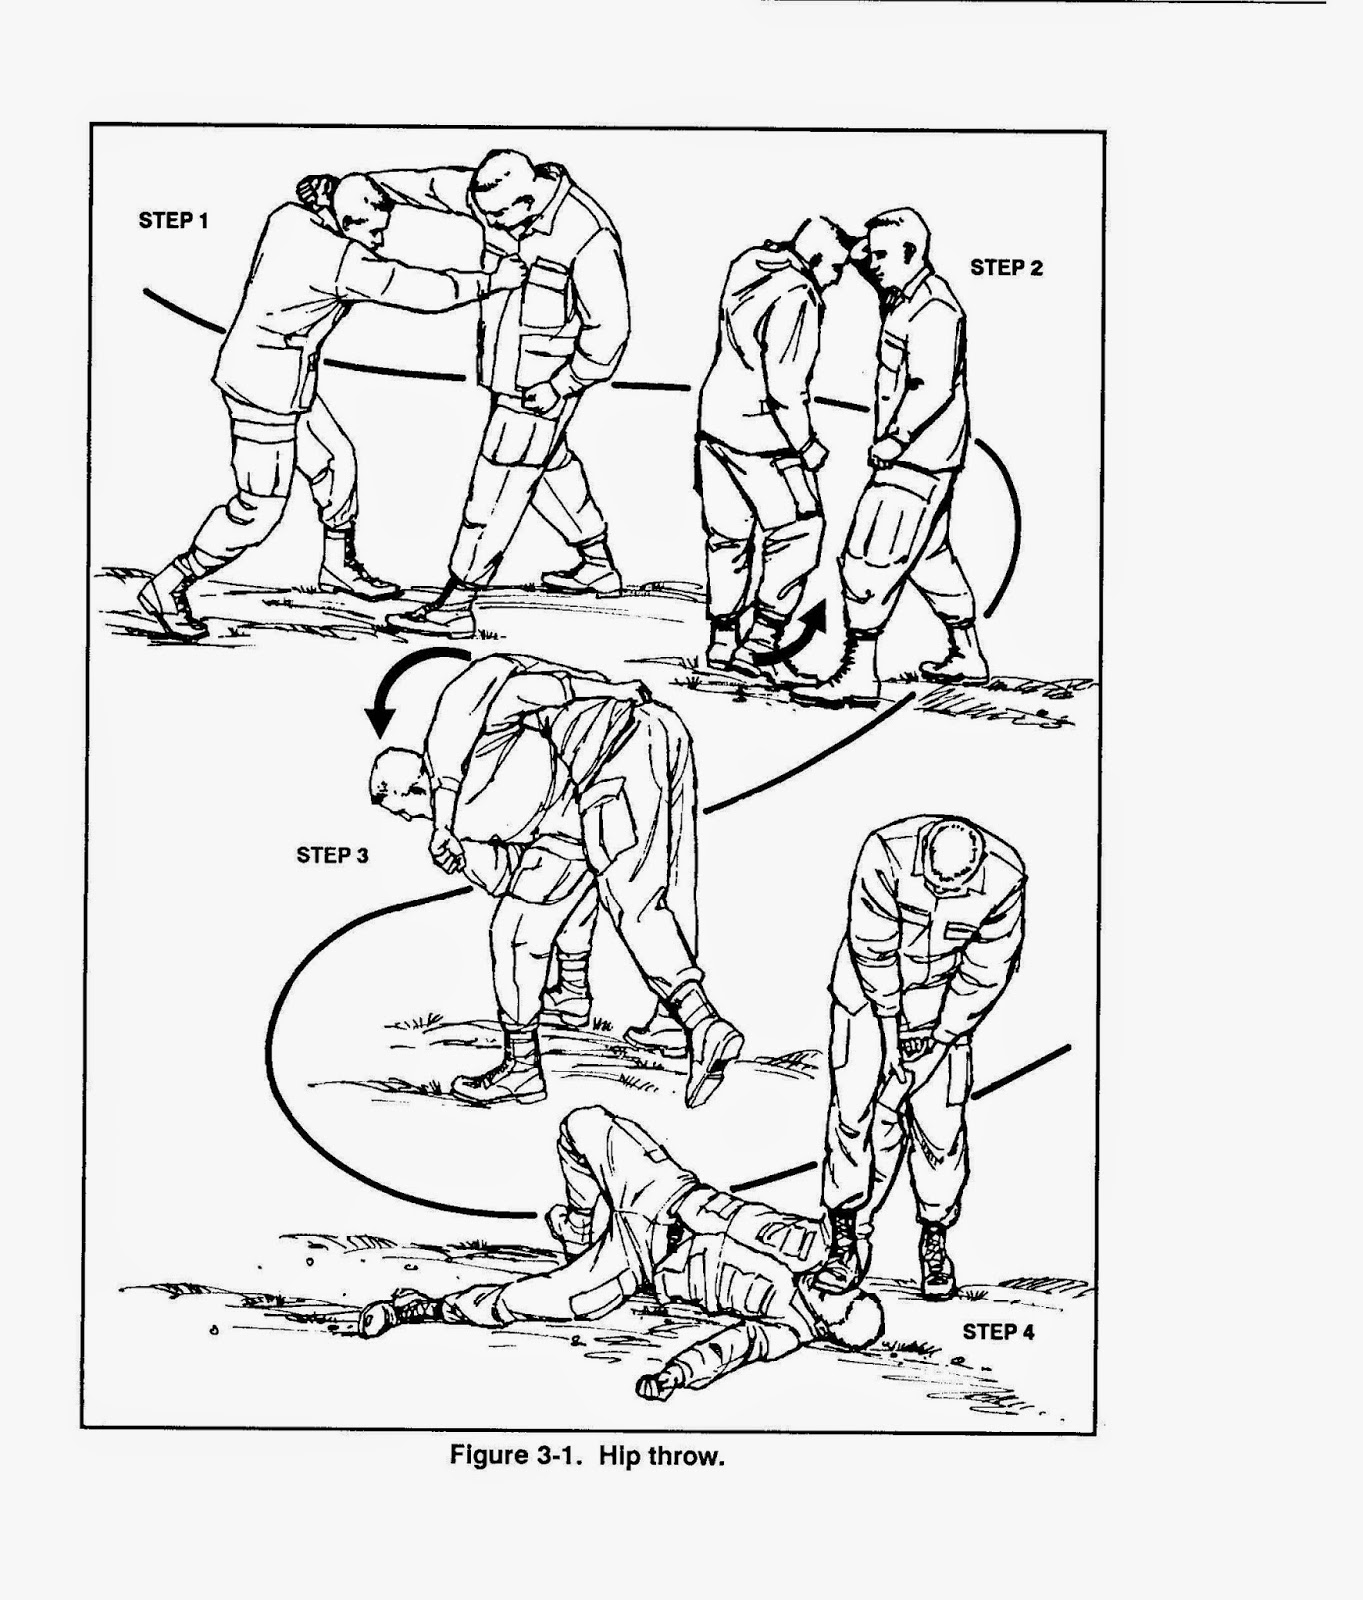 devise and revise us army combatives 1992 chain link and concrete rh chainlinkandconcrete blogspot com Army Combatives Training Army Combatives Level 1